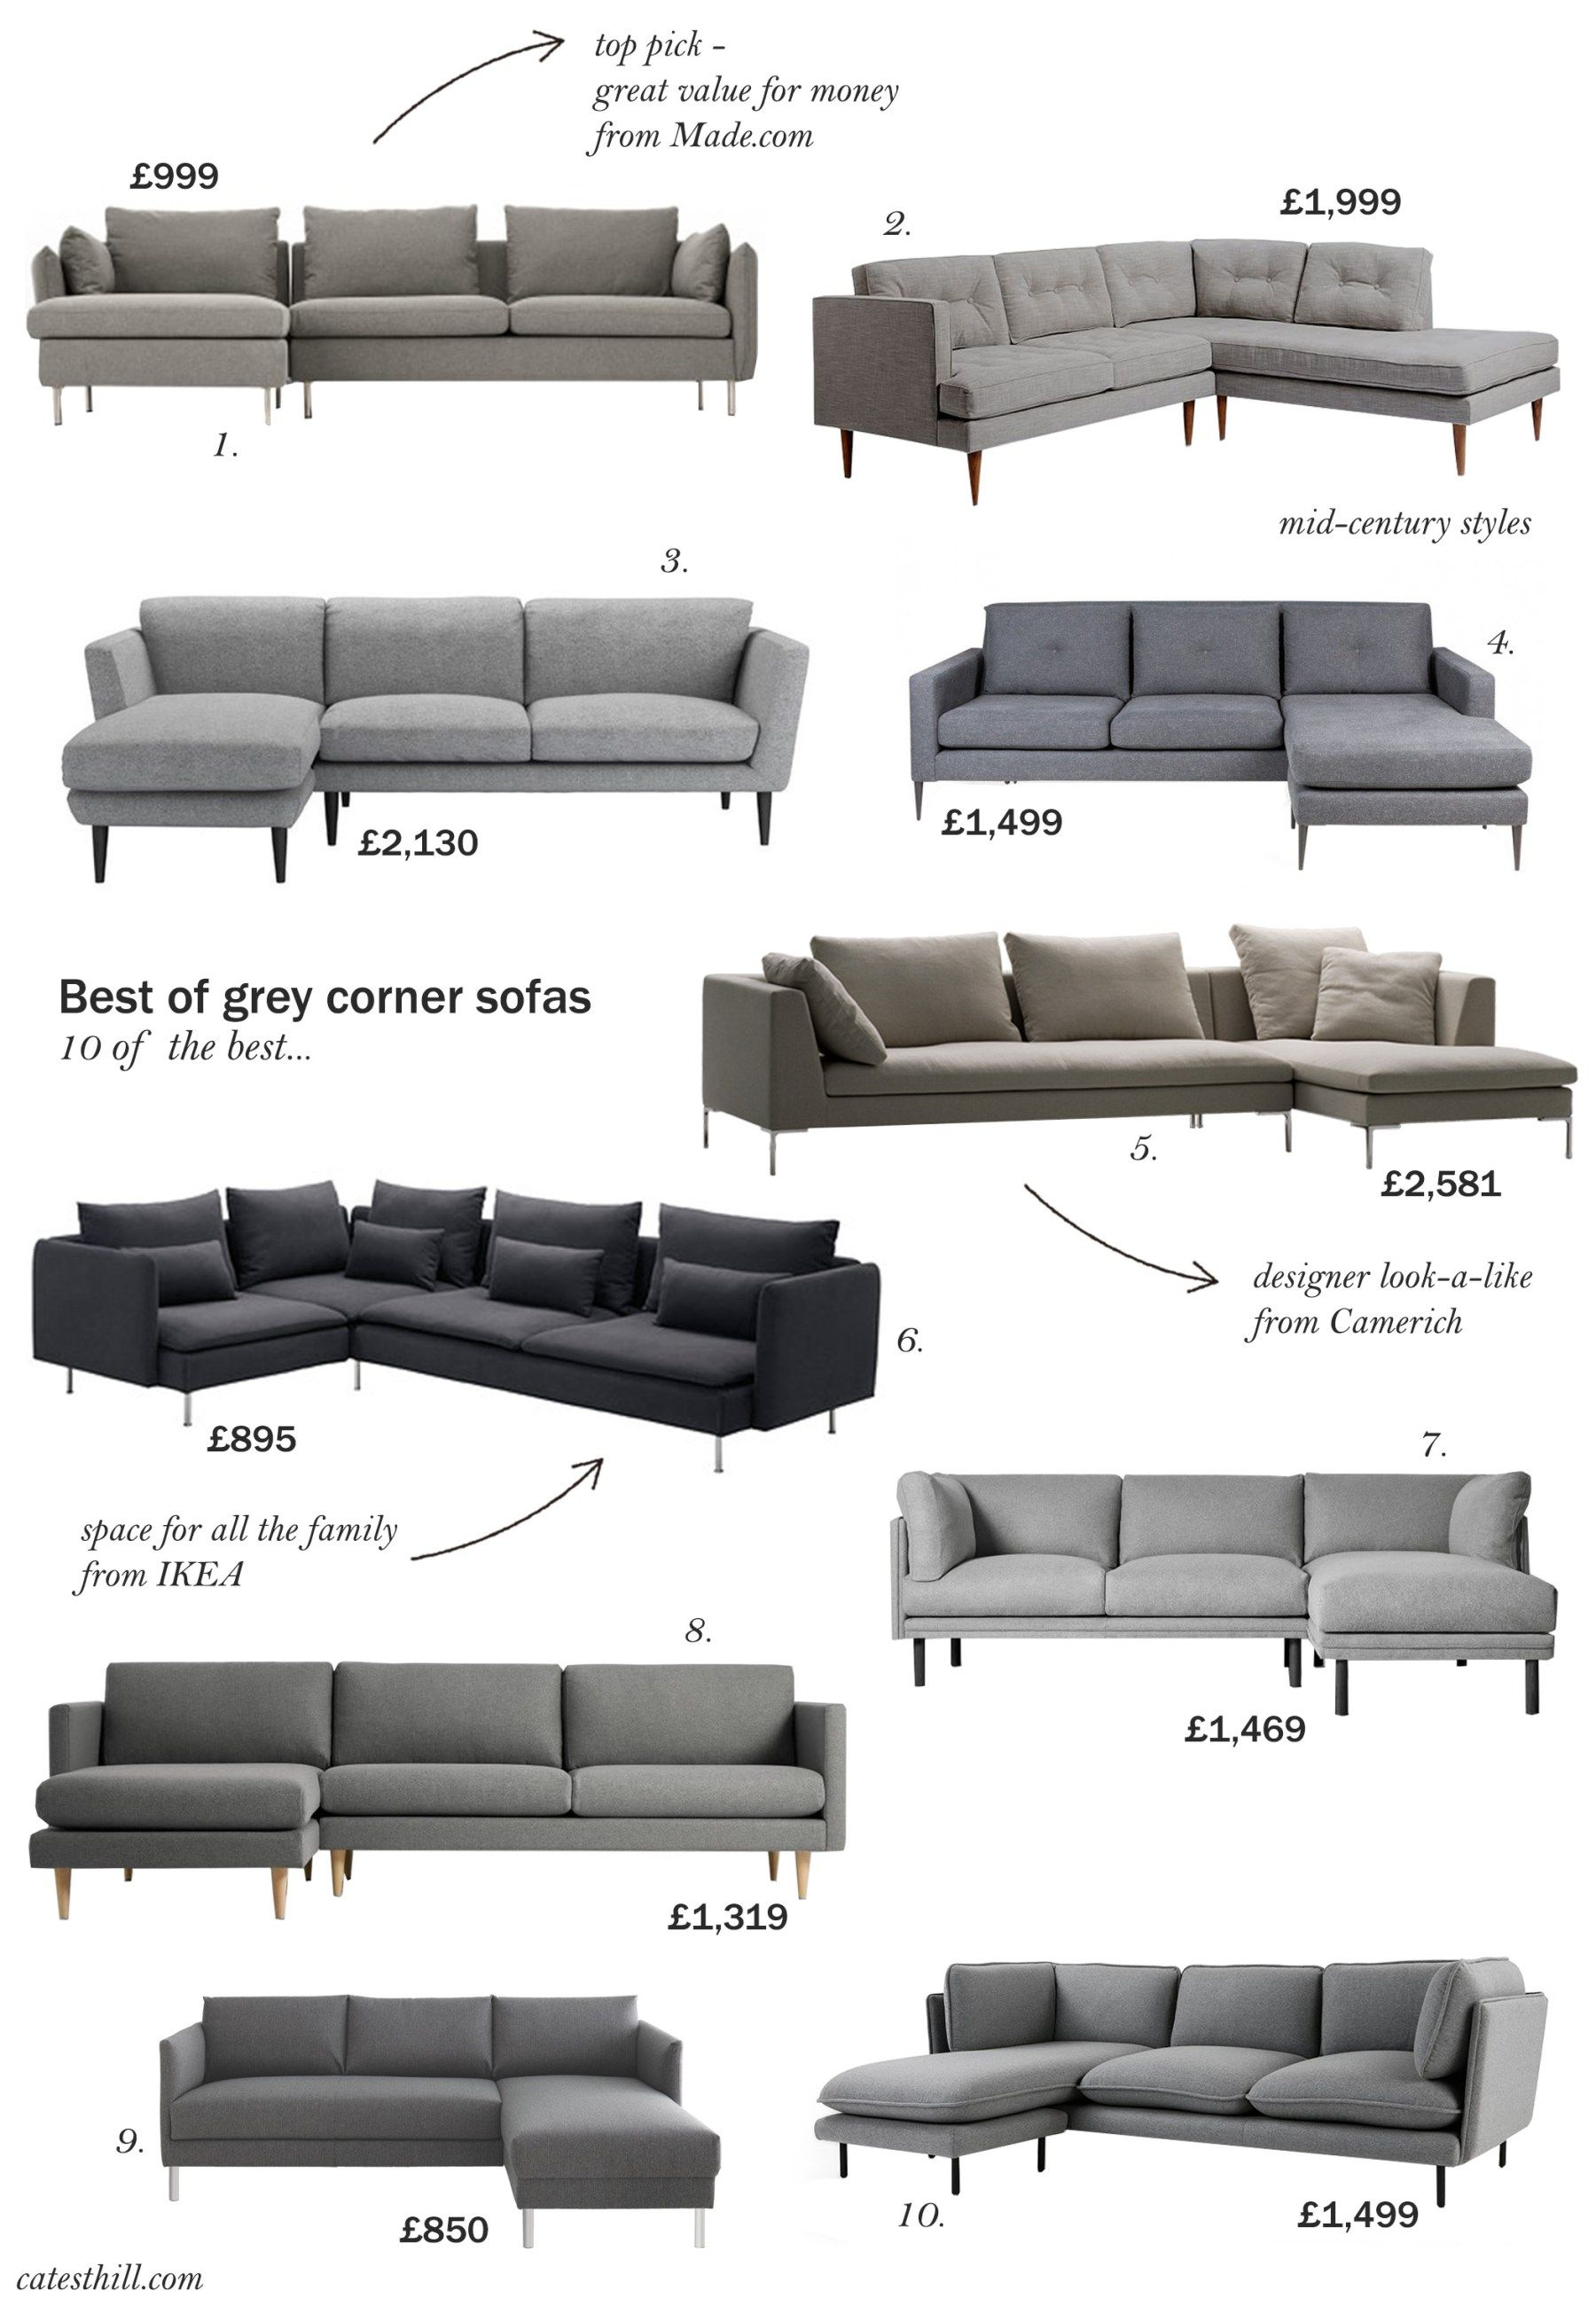 10 of the best grey corner sofas images